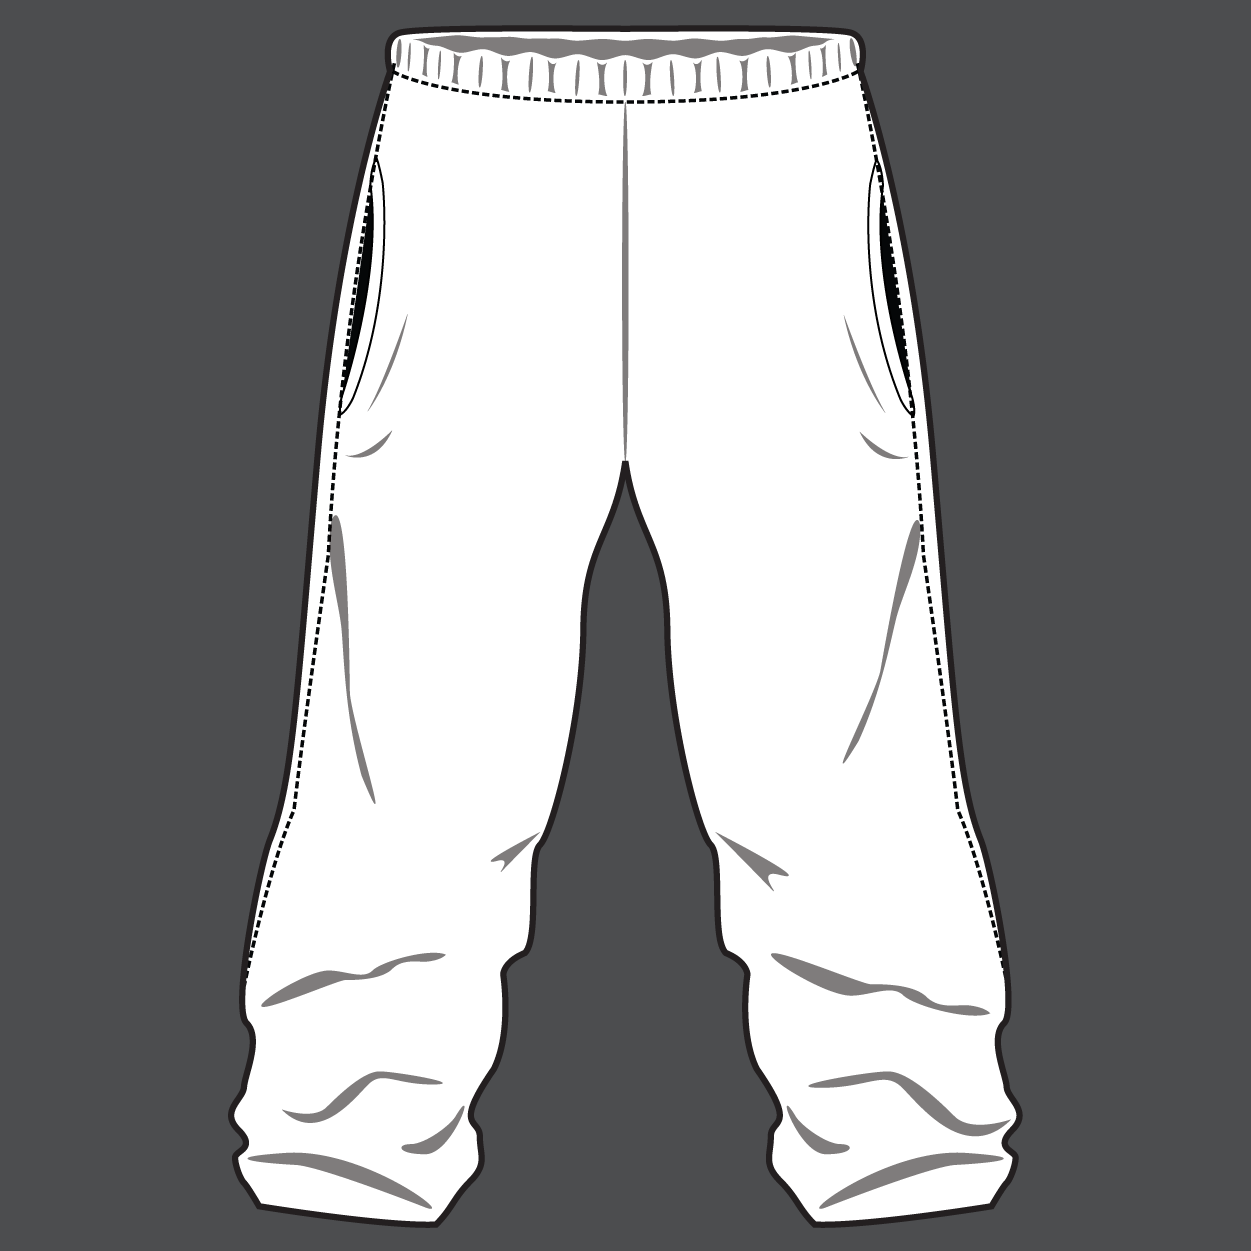 Track Pants - Retail Price:$39.99Team Price 12-23:$34.99Team Price 24+:$29.99Team Price 50+:Contact your Emblem Rep for a custom quoteFabric:MicropeachSizes:YXS, YS, YM, YL, XS, S, M, L, XL, XXL, XXXLOptions:N/A